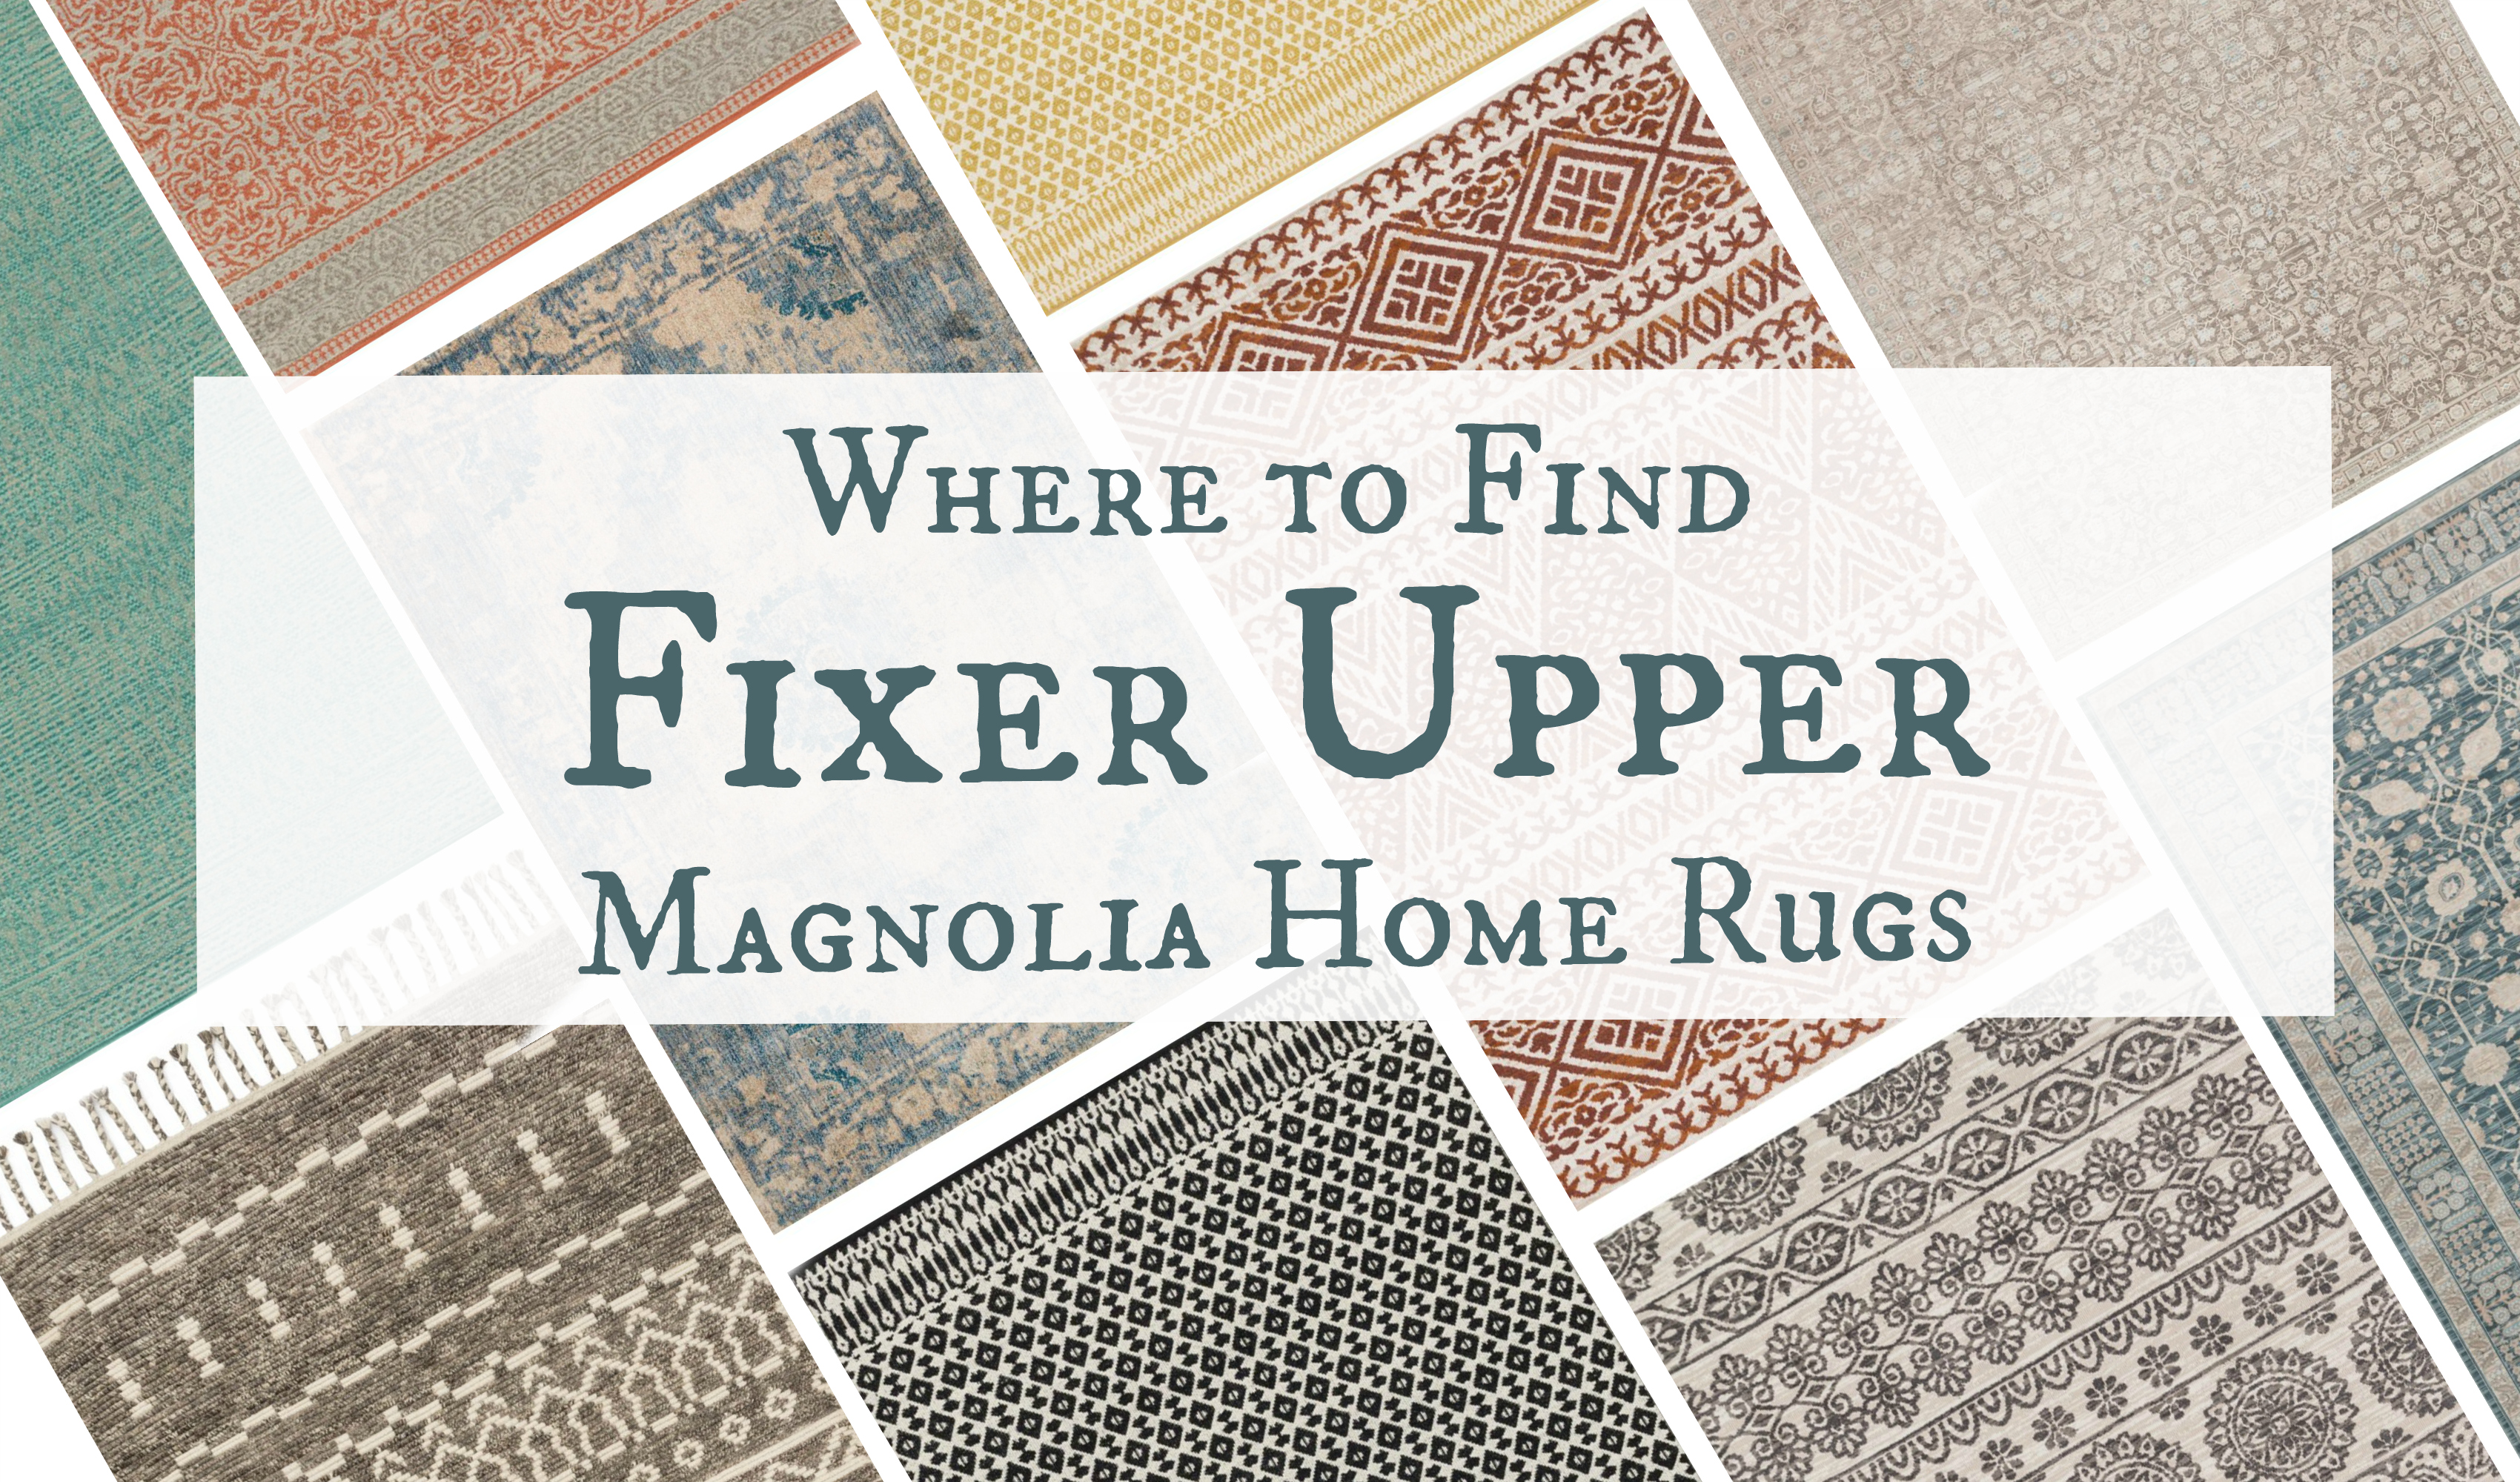 Where to Gind Fixer Upper Magnolia Home Rugs